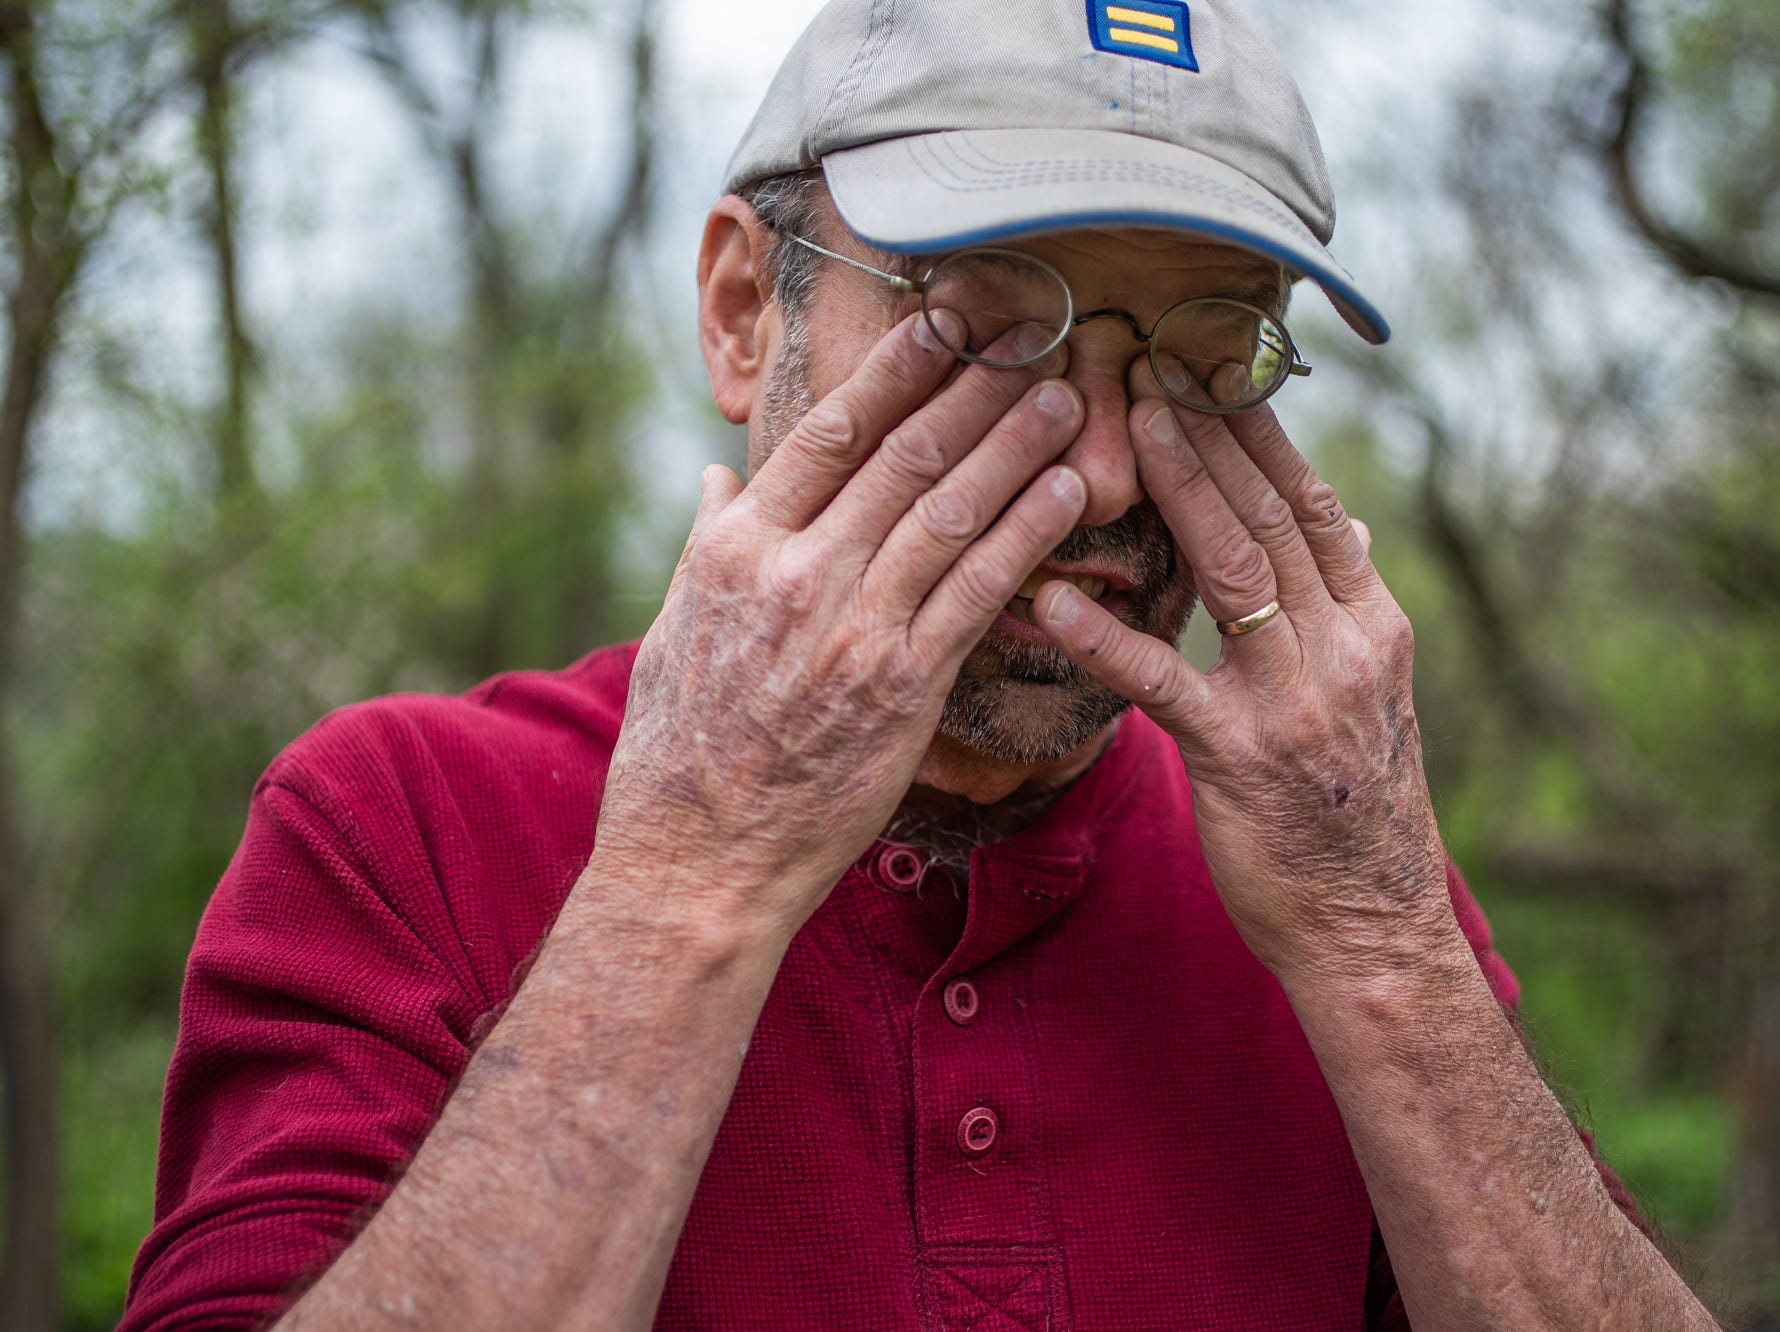 """Jeff Purvis wipes tears from his face as he talks about the gravesite of a slave his ancestor brought to Indiana in the 1830s. Purvis says the old family tale suggests the slave, Price Joyce, was being freed but his research suggests differently.  """"I think it's curious he only had one slave when some of his siblings had numerous ones,"""" said Purvis, of his great-great-great-grandfather, Alexander Joyce, on Wednesday, May 1, 2019. """"And in these wills, they split families up. A wife goes this way. A husband goes this way. Kids go a third way. It's remarkable but remarkably awful."""""""